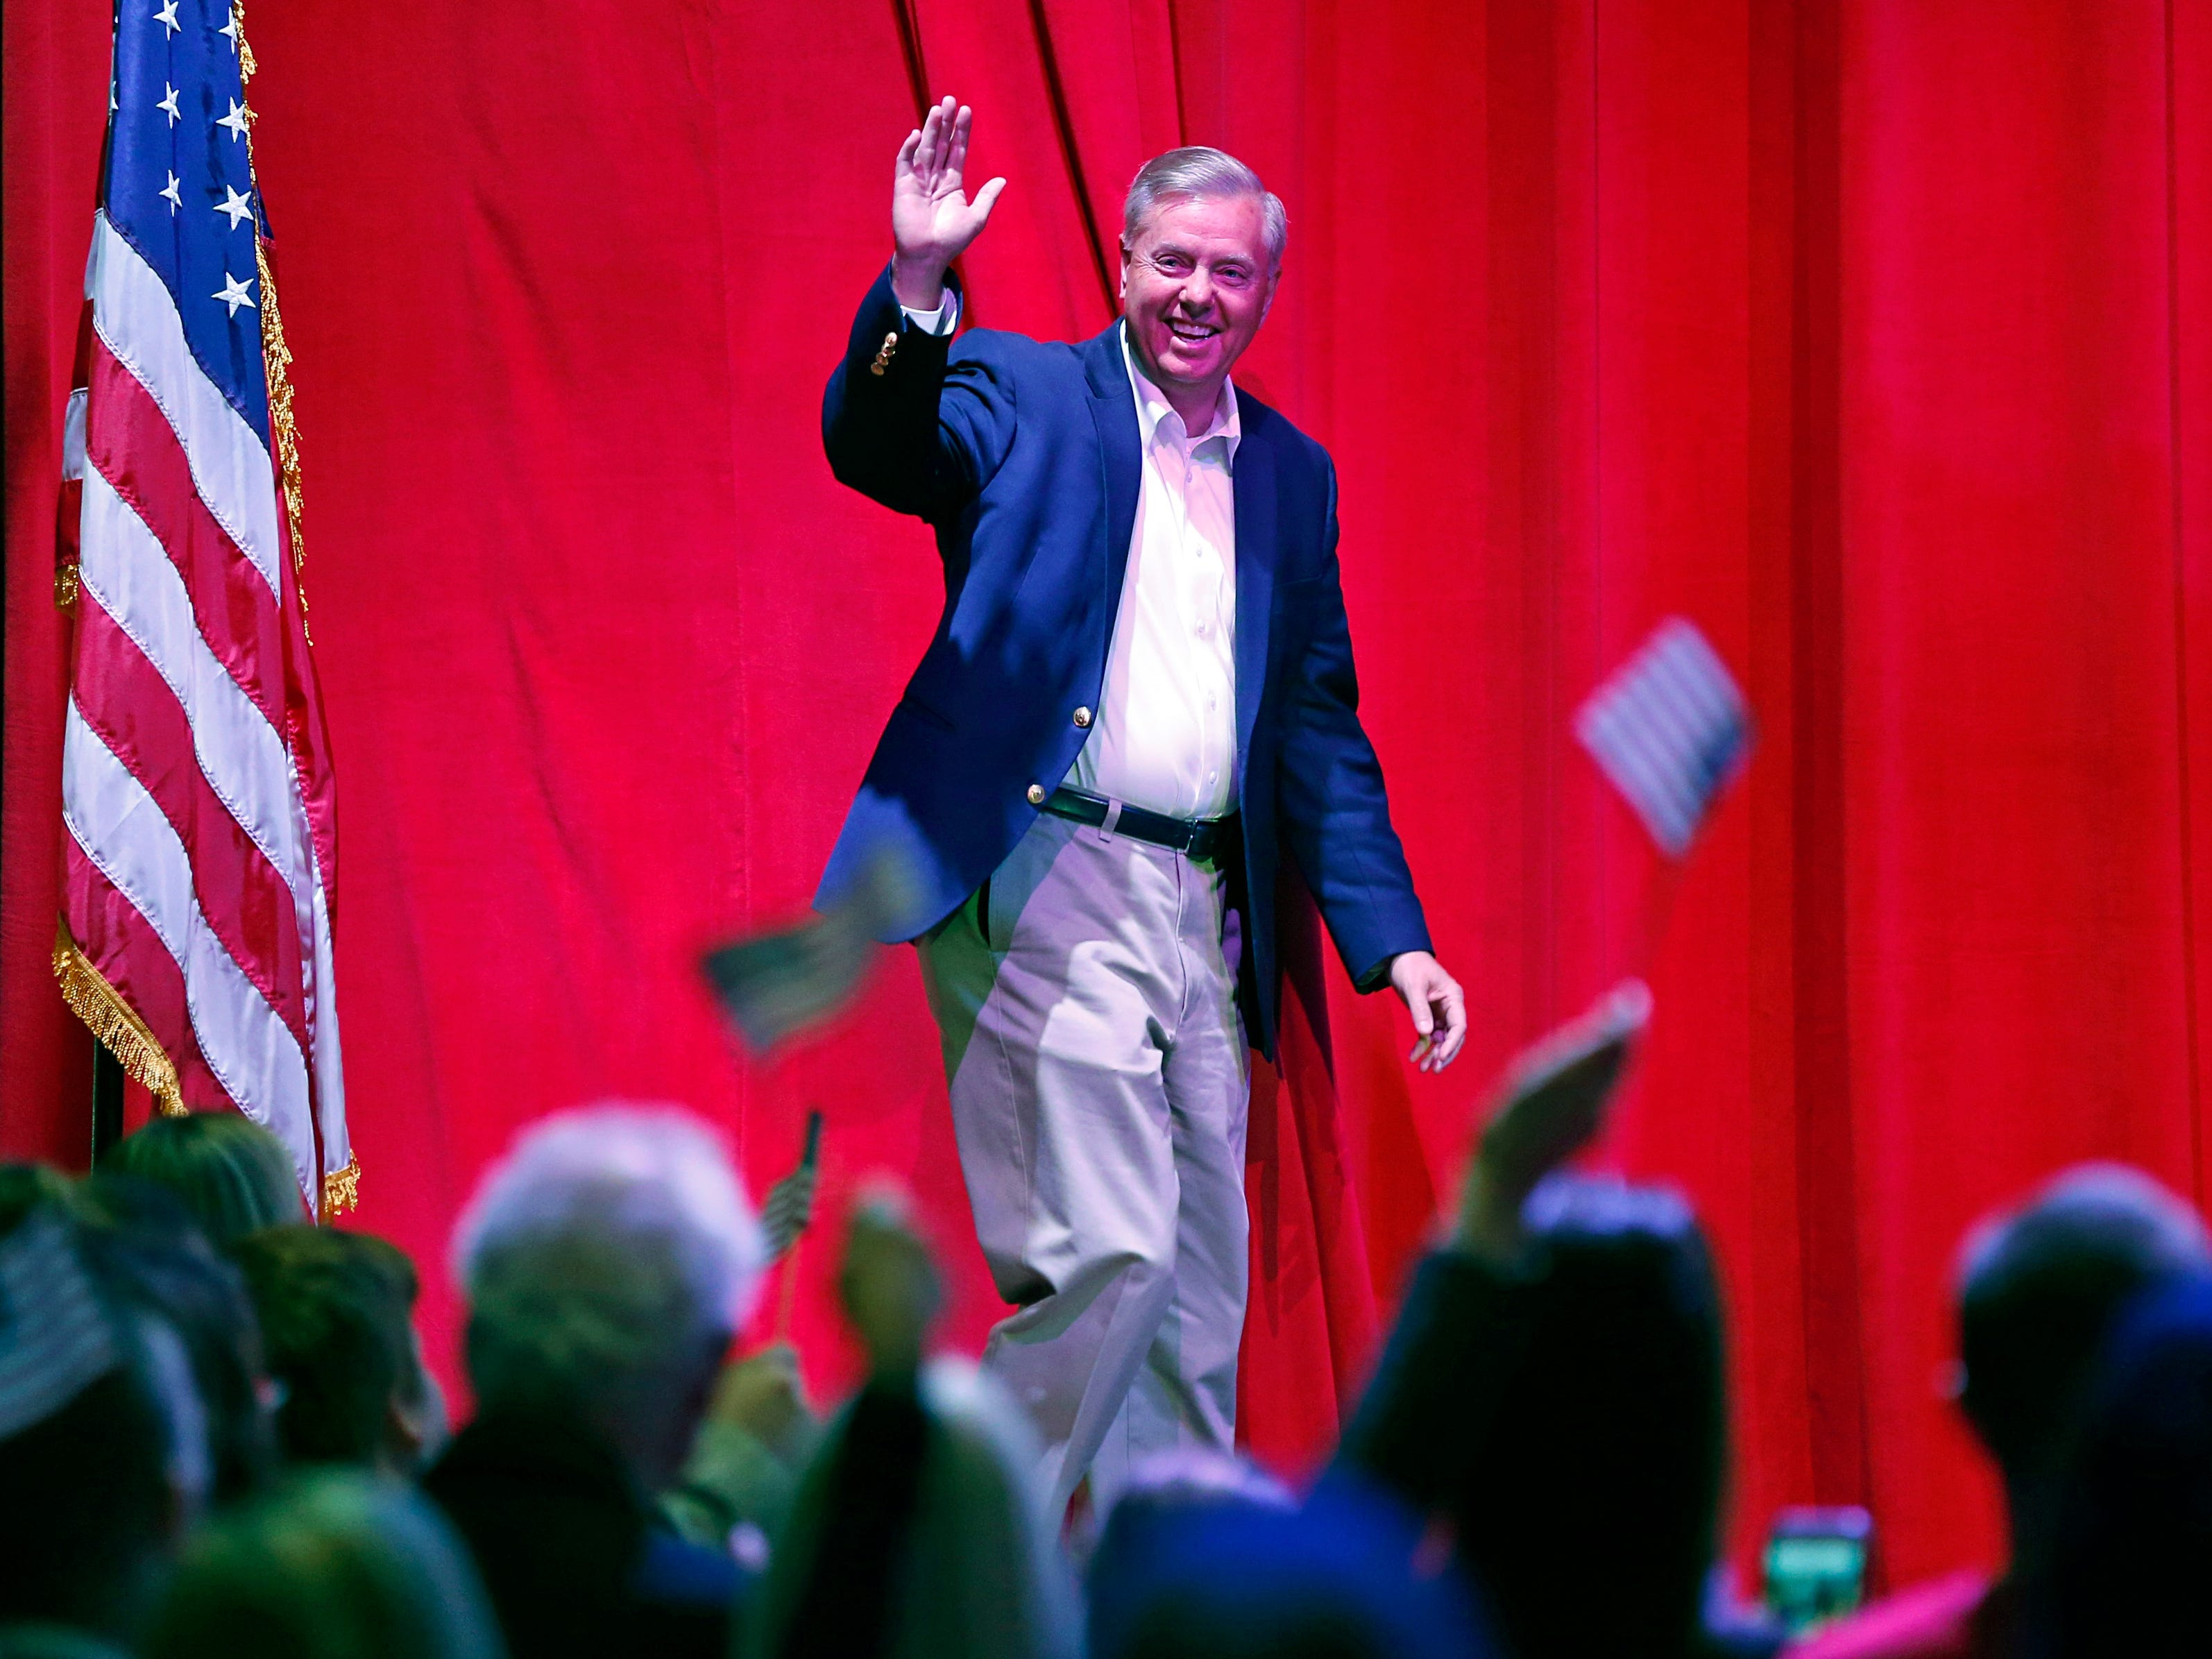 U.S. Senator Lindsey Graham waves to supporters as he's introduced during a campaign event for Republican U.S. Senate candidate Marsha Blackburn Sunday, Oct. 28, 2018, in Nashville, Tenn.